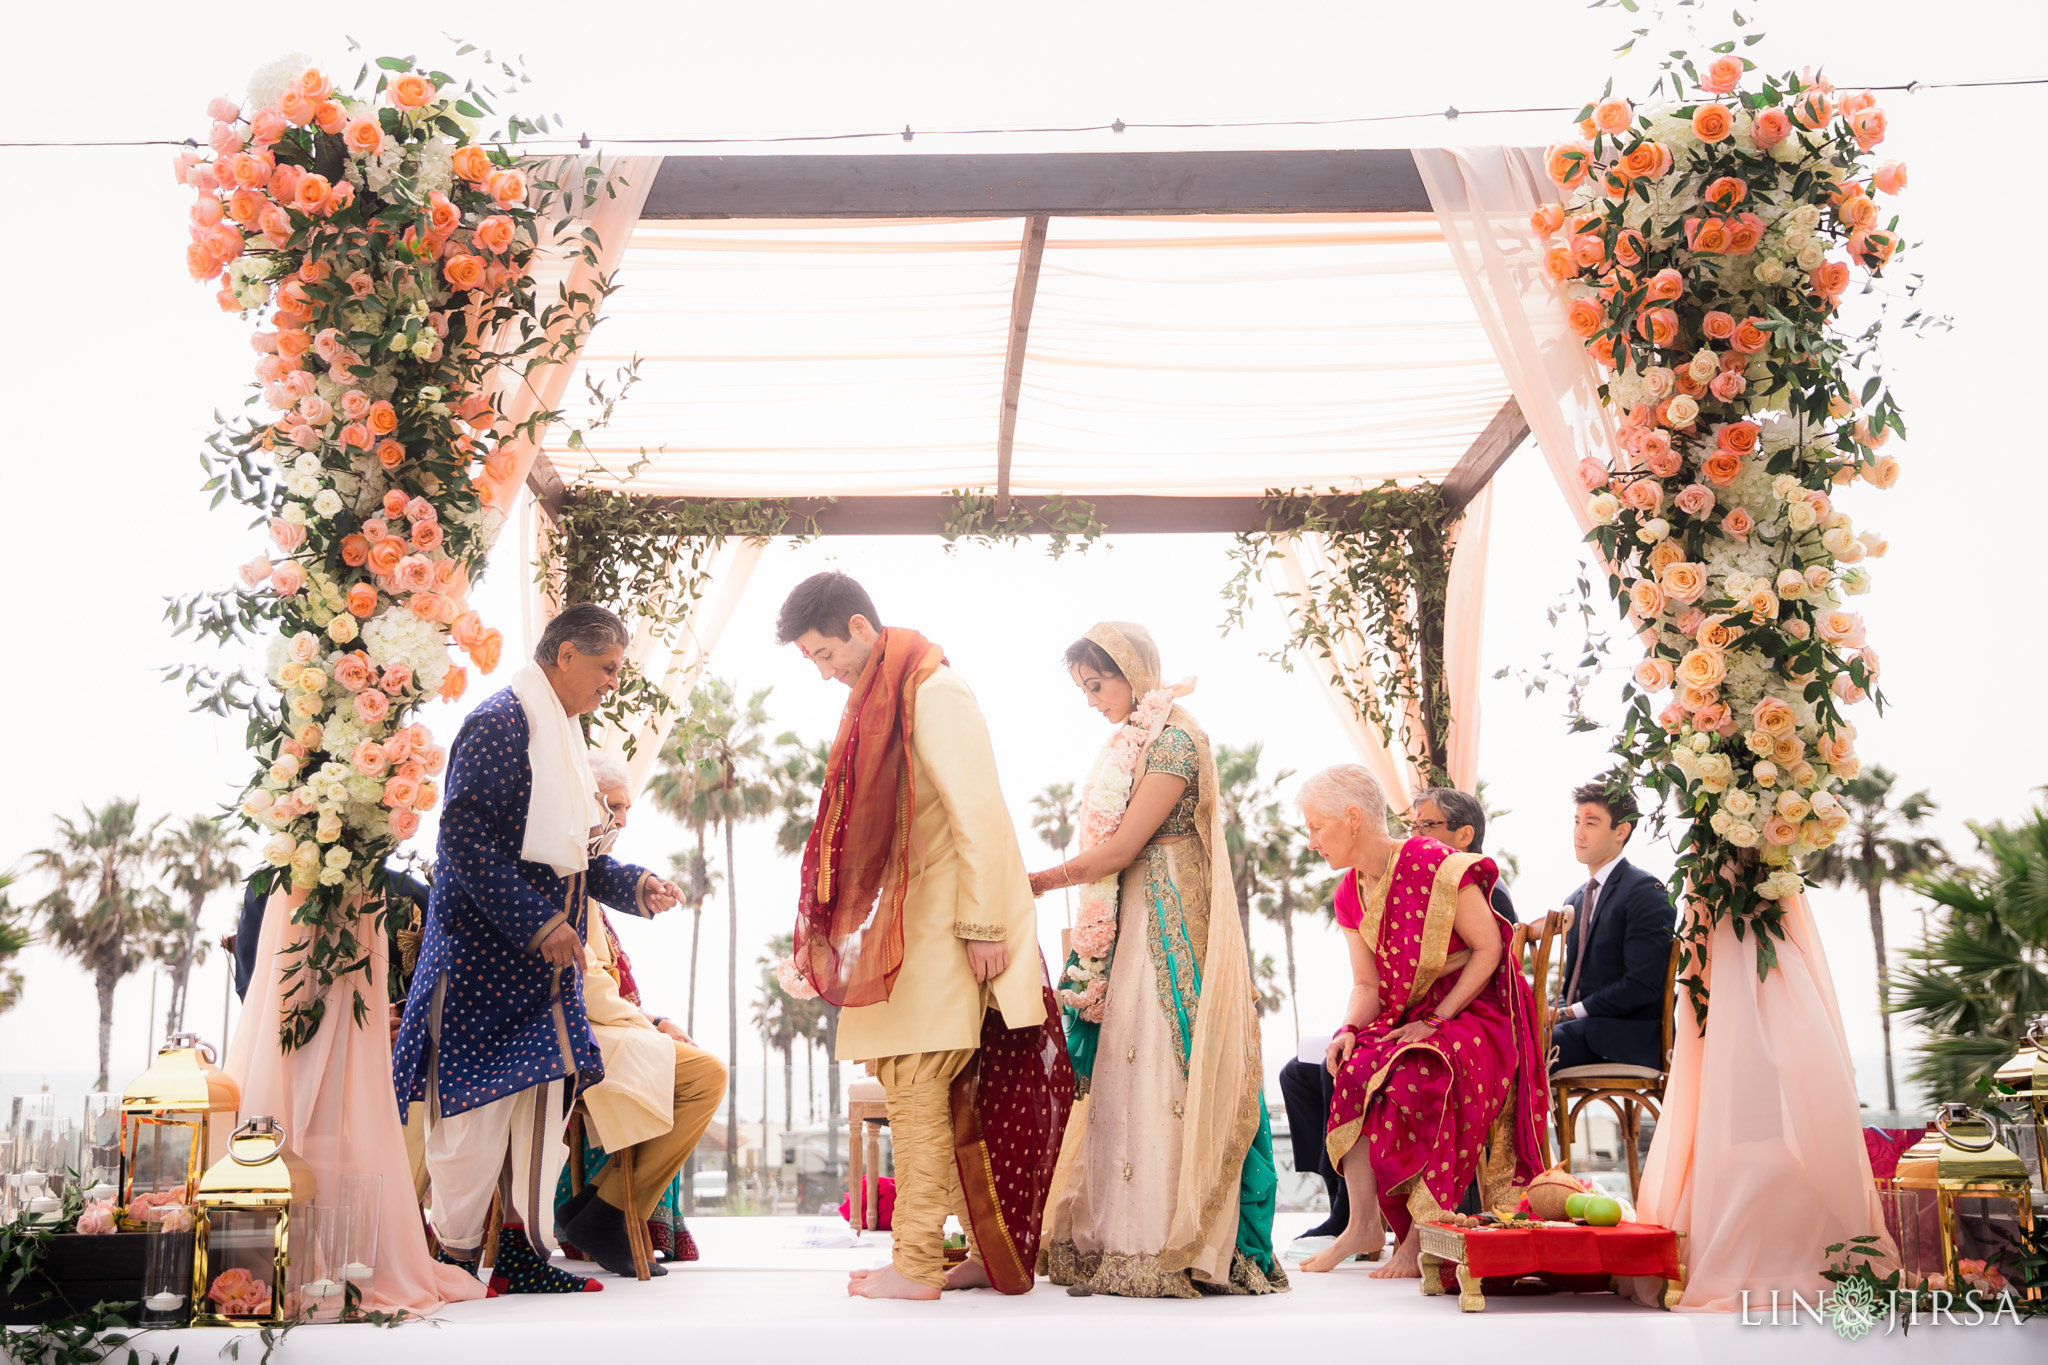 30 pasea hotel and spa huntington beach indian wedding ceremony photography